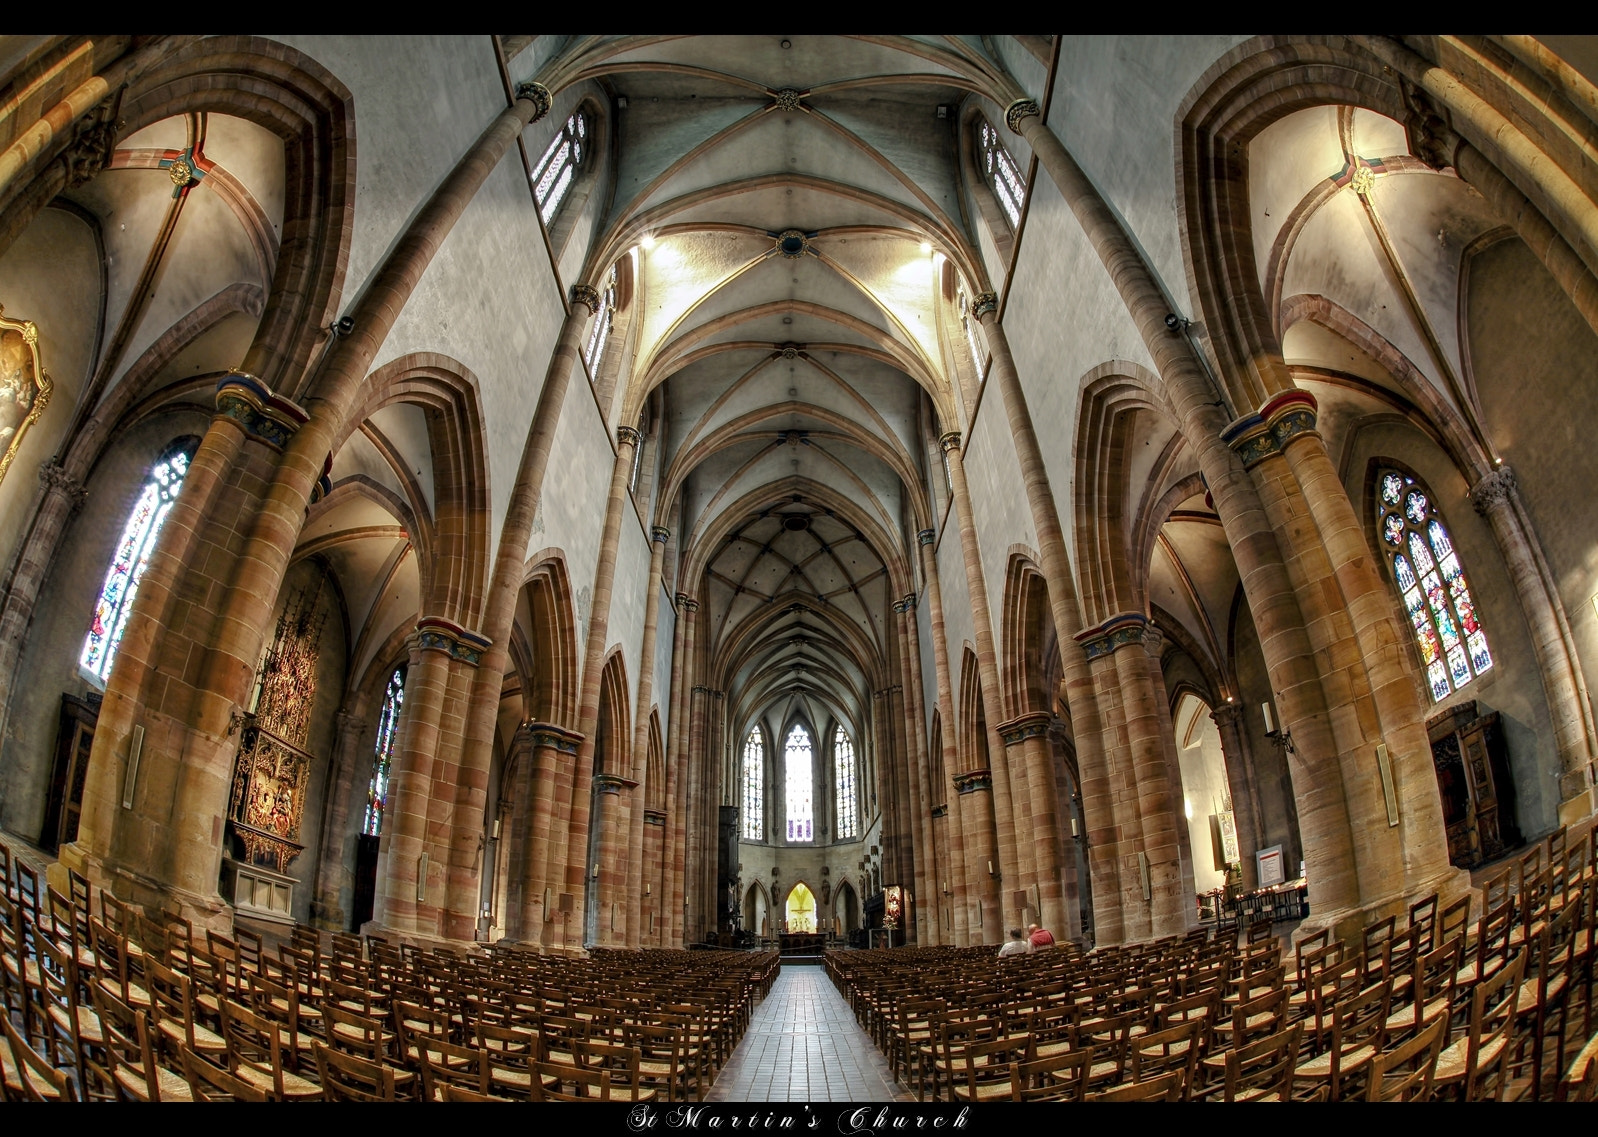 Photograph *St Martin's Church* Colmar by erhan sasmaz on 500px